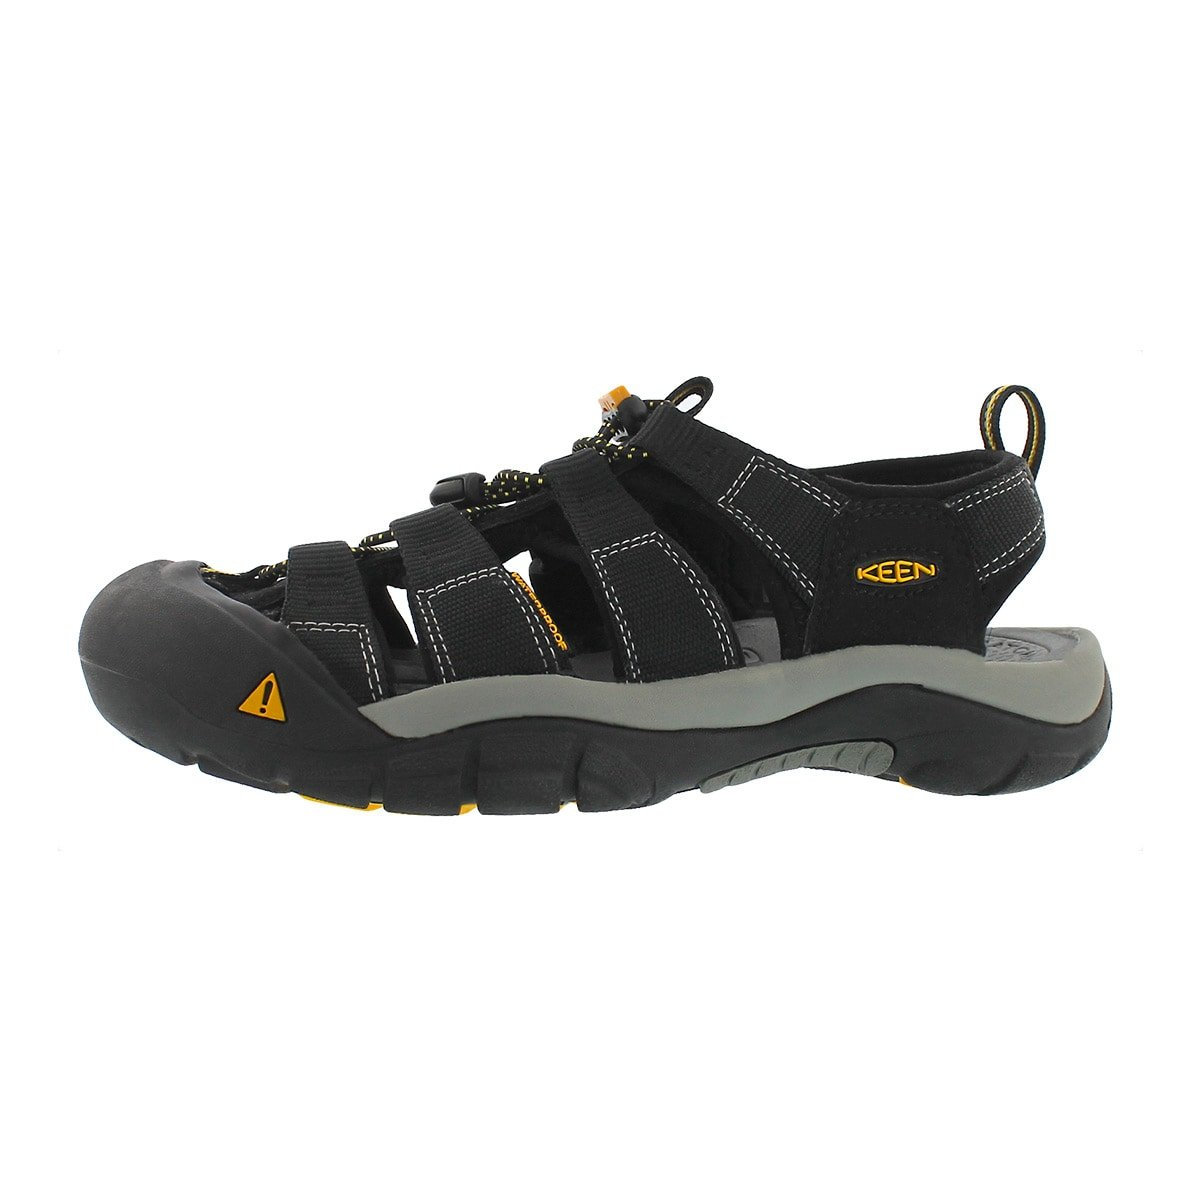 KEEN Men's Newport H2 Sport Sandal Black 10.5 M US by KEEN